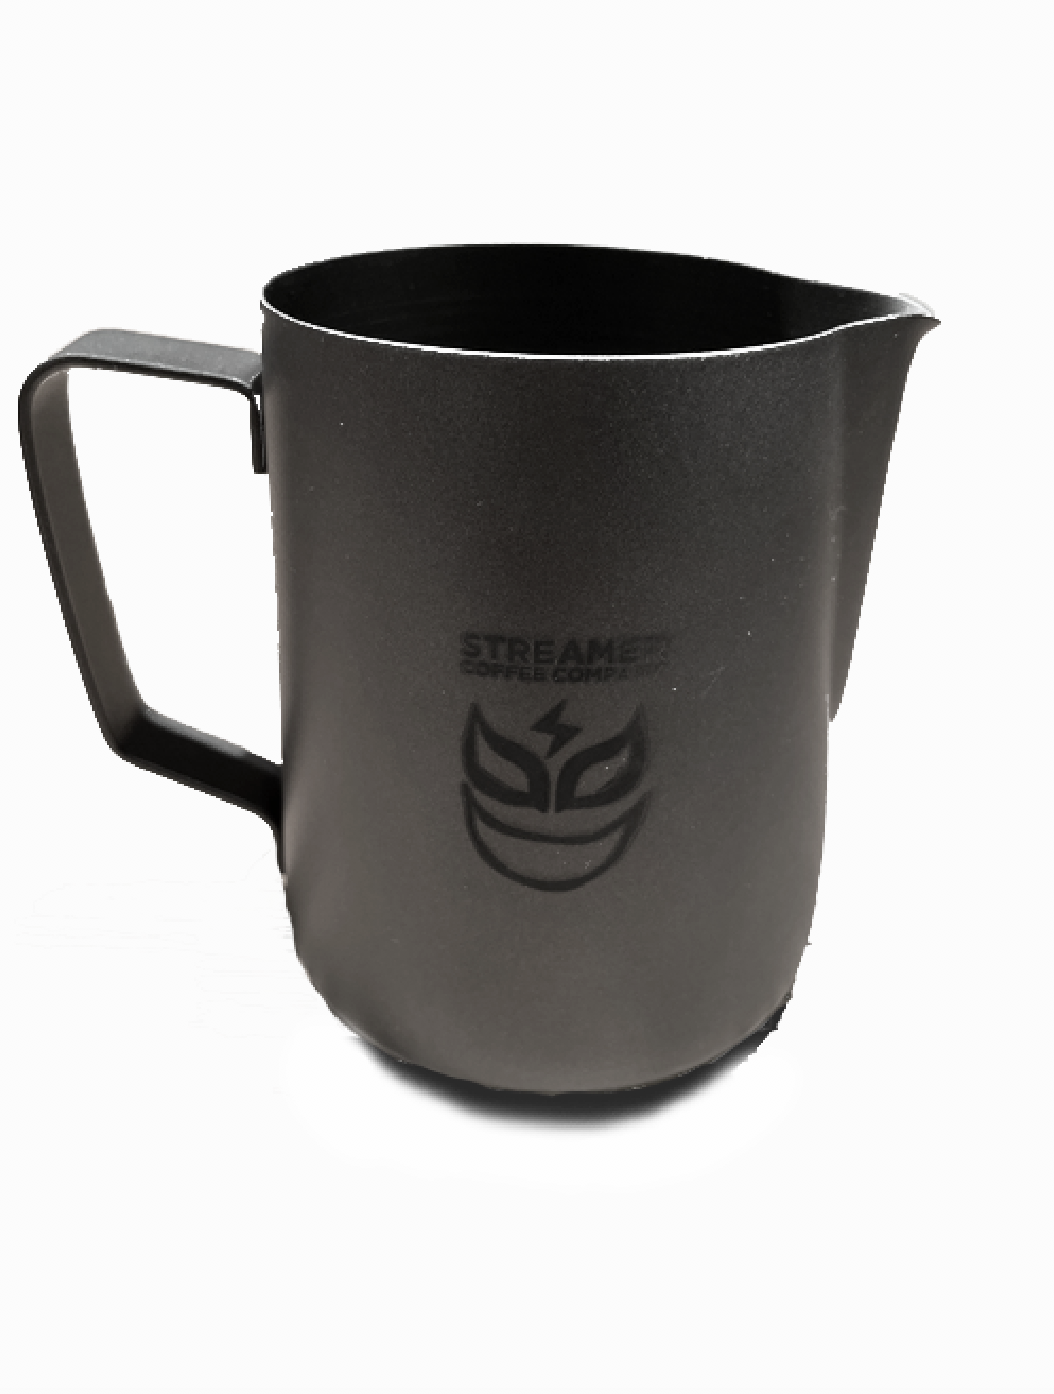 LASER MARK SERIES LIMITED ITEM STRONG STYLE LOGO PITCHER 600ML STEALTH BLACK X BLACK